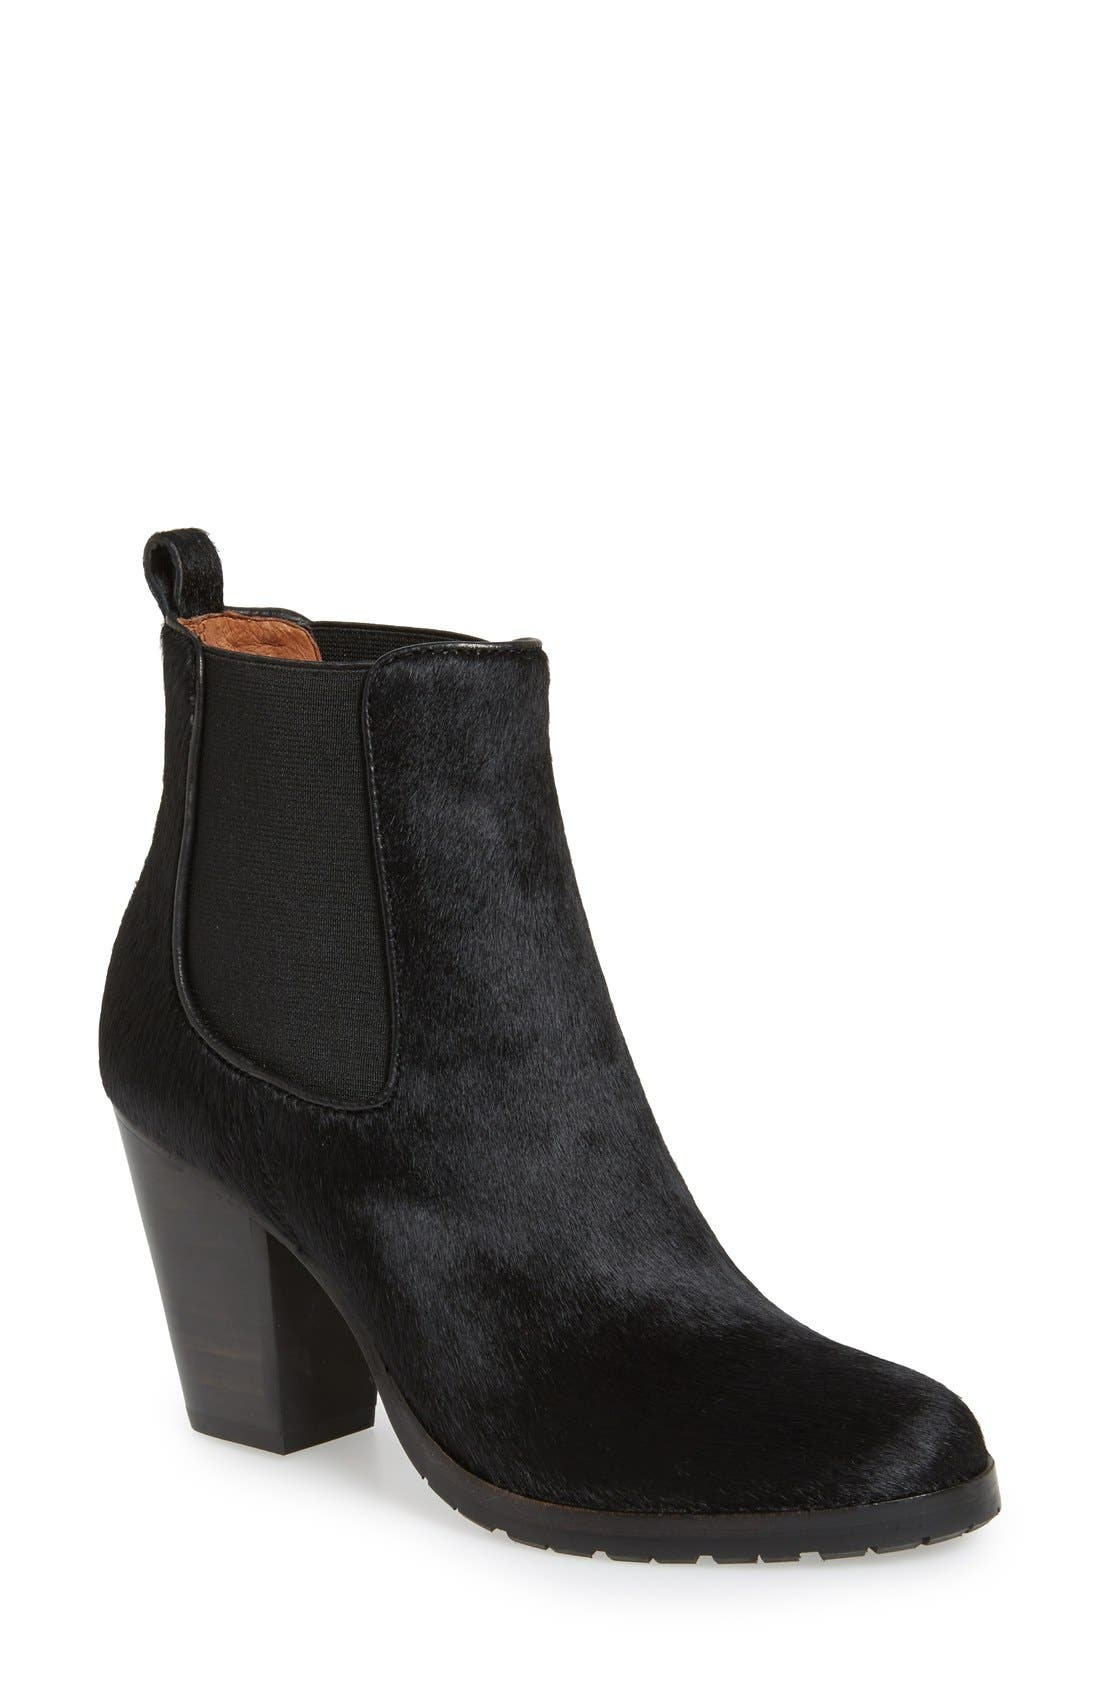 'Tate' Chelsea Boot,                         Main,                         color, 001